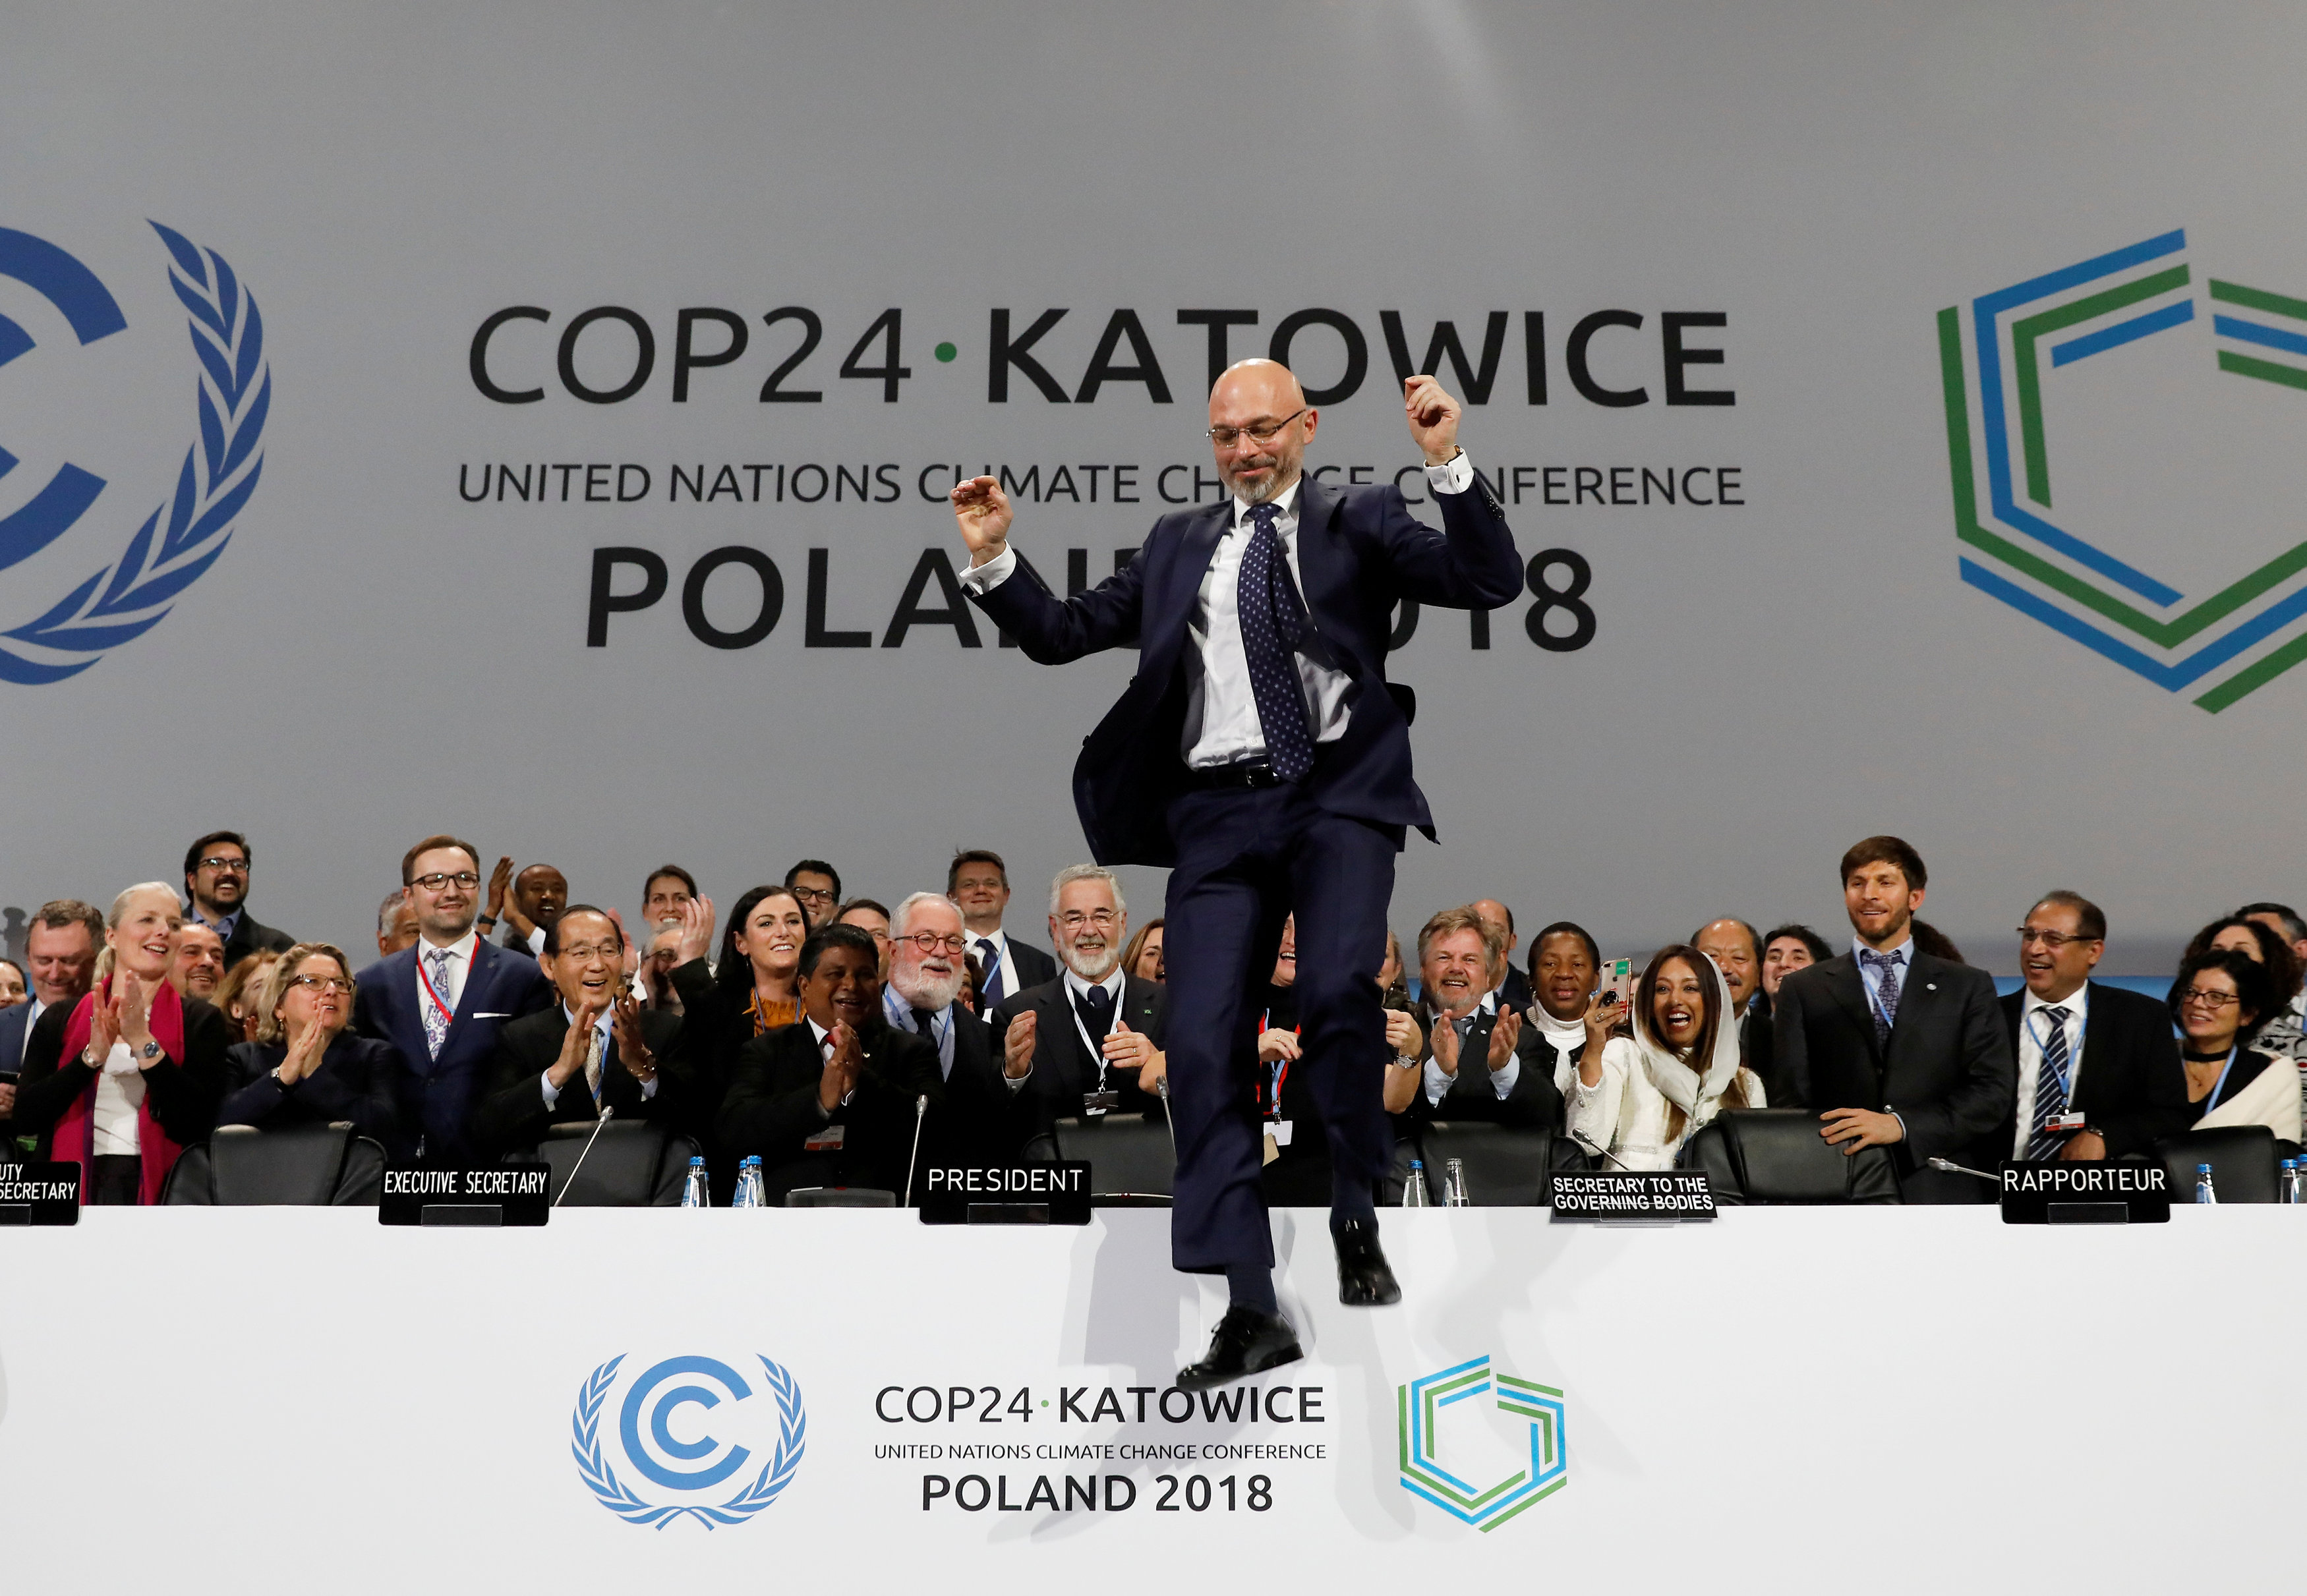 2018 12 15T213900Z 537481071 RC1C307A65C0 RTRMADP 3 CLIMATE CHANGE ACCORD CLOSING